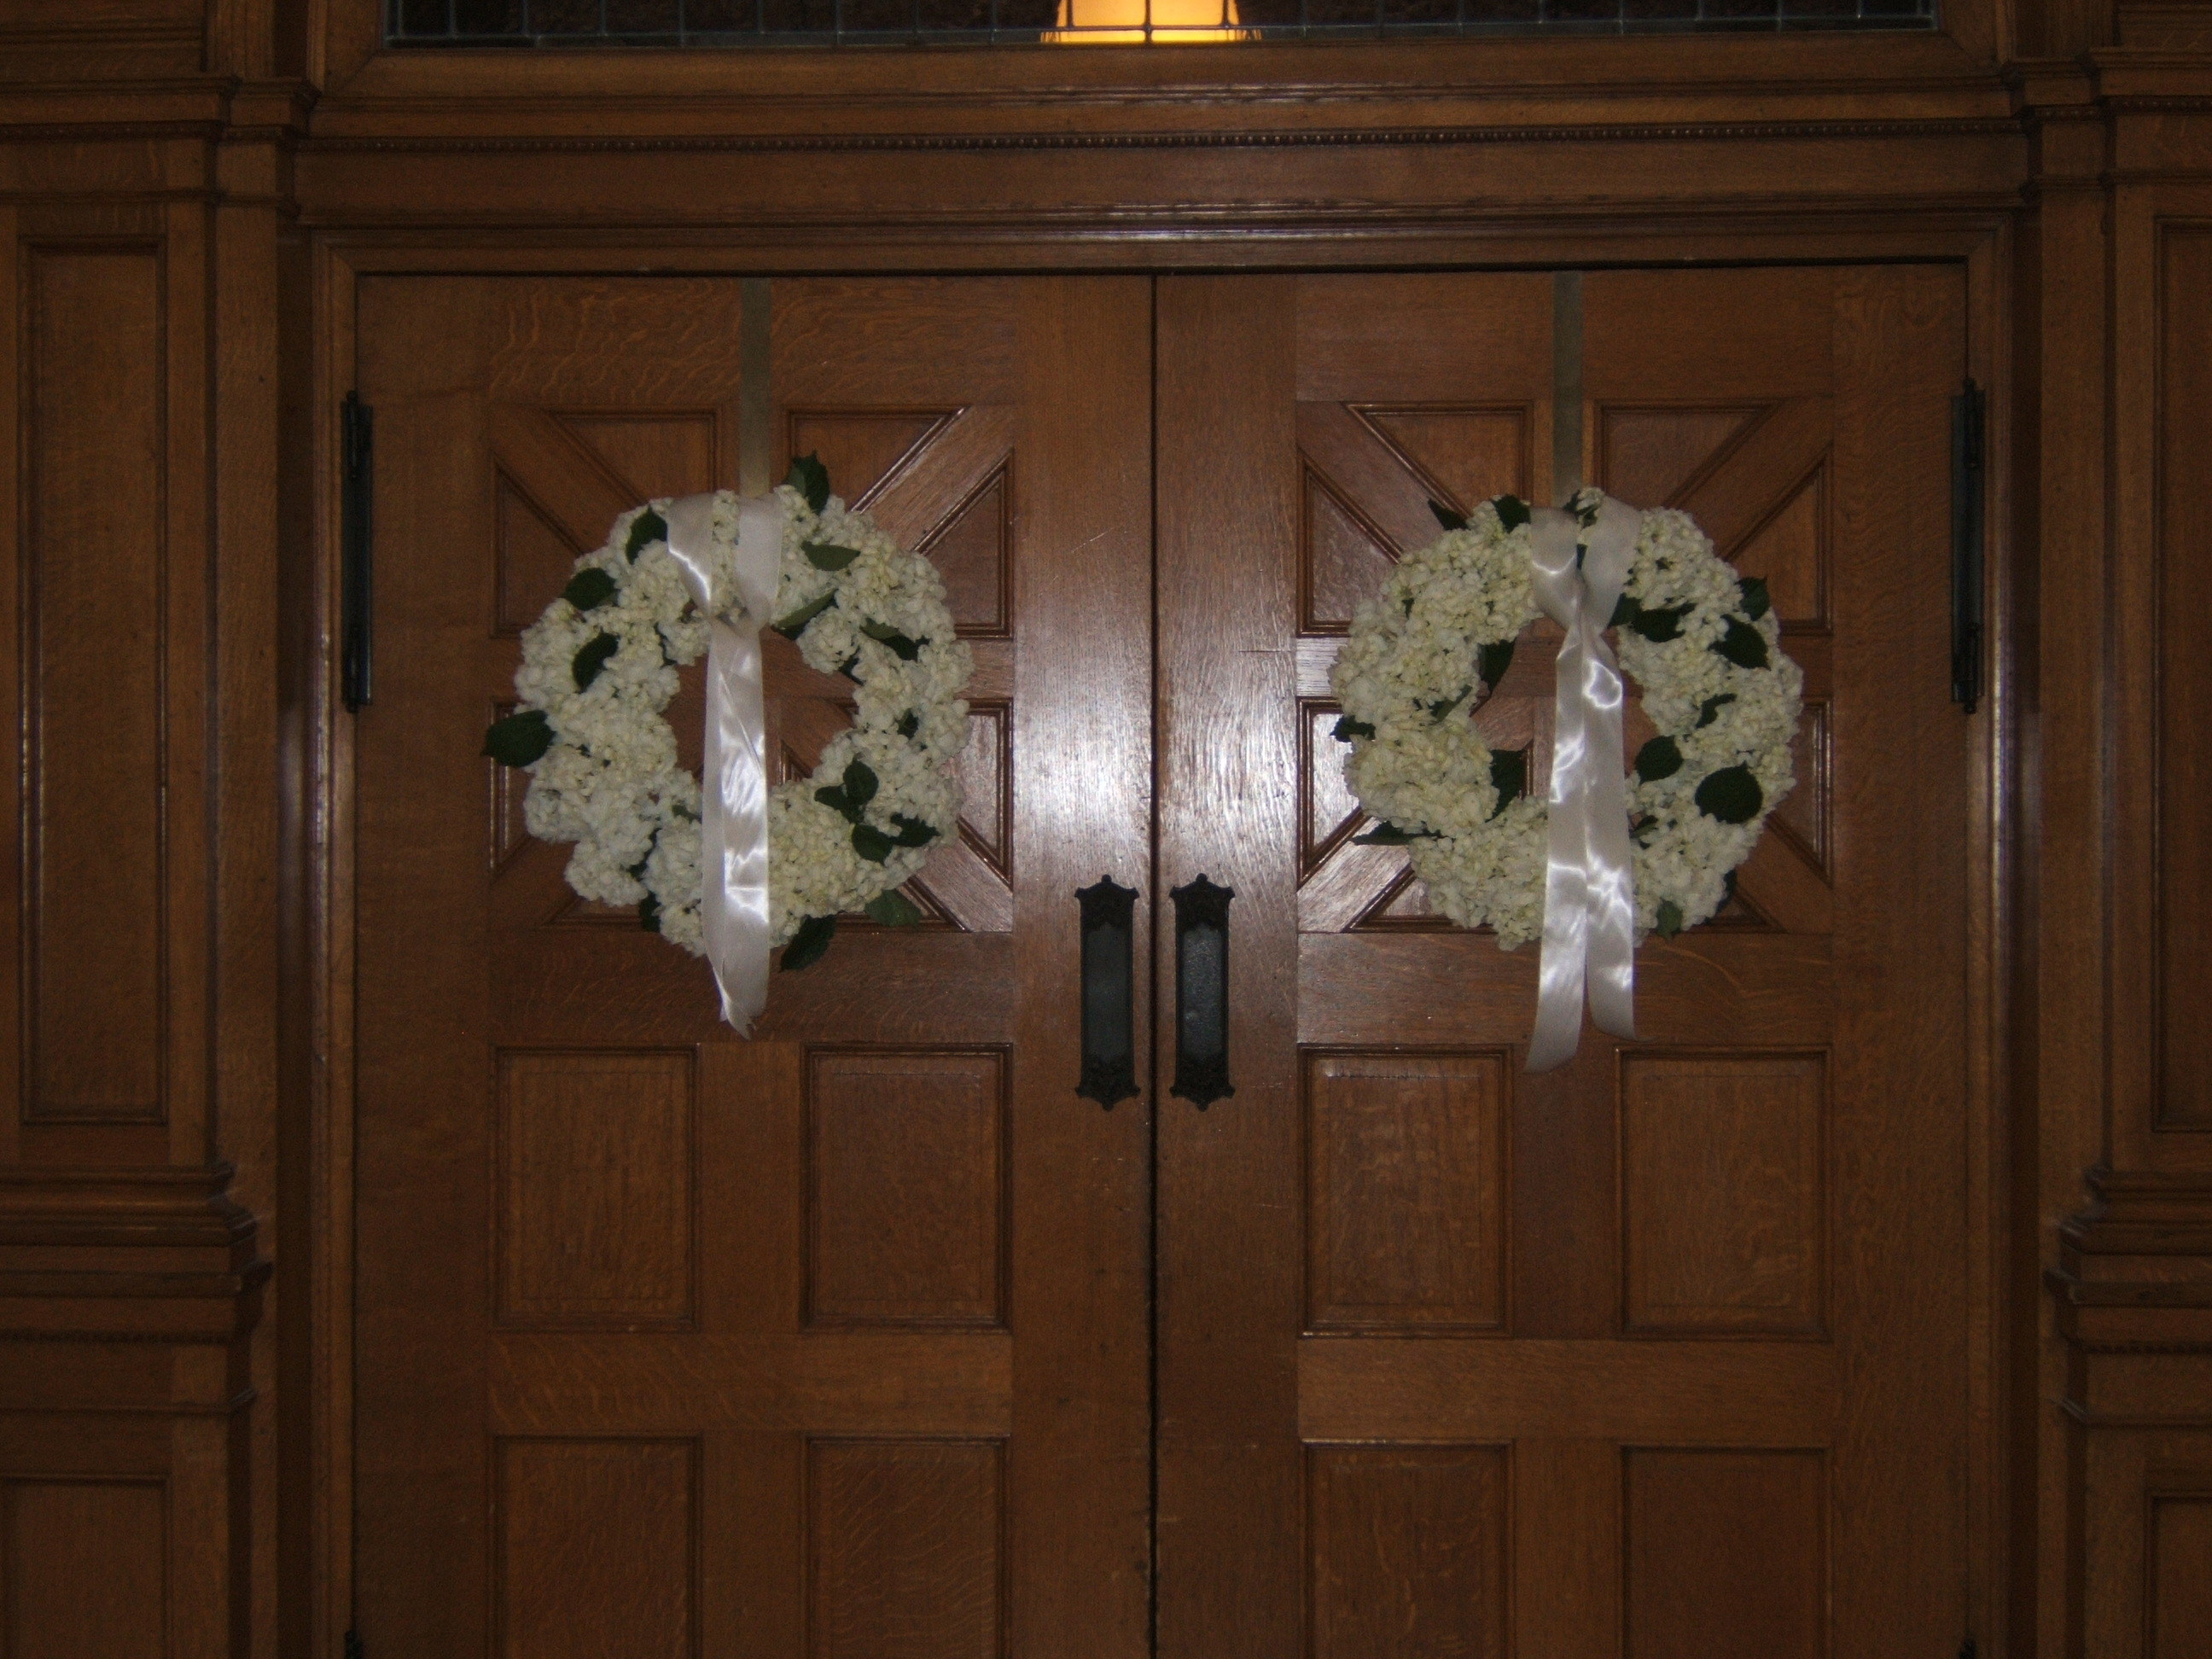 Ceremony, Flowers & Decor, Ceremony Flowers, Flowers, Hydrangea, Door, Kacie cooper - floral designer